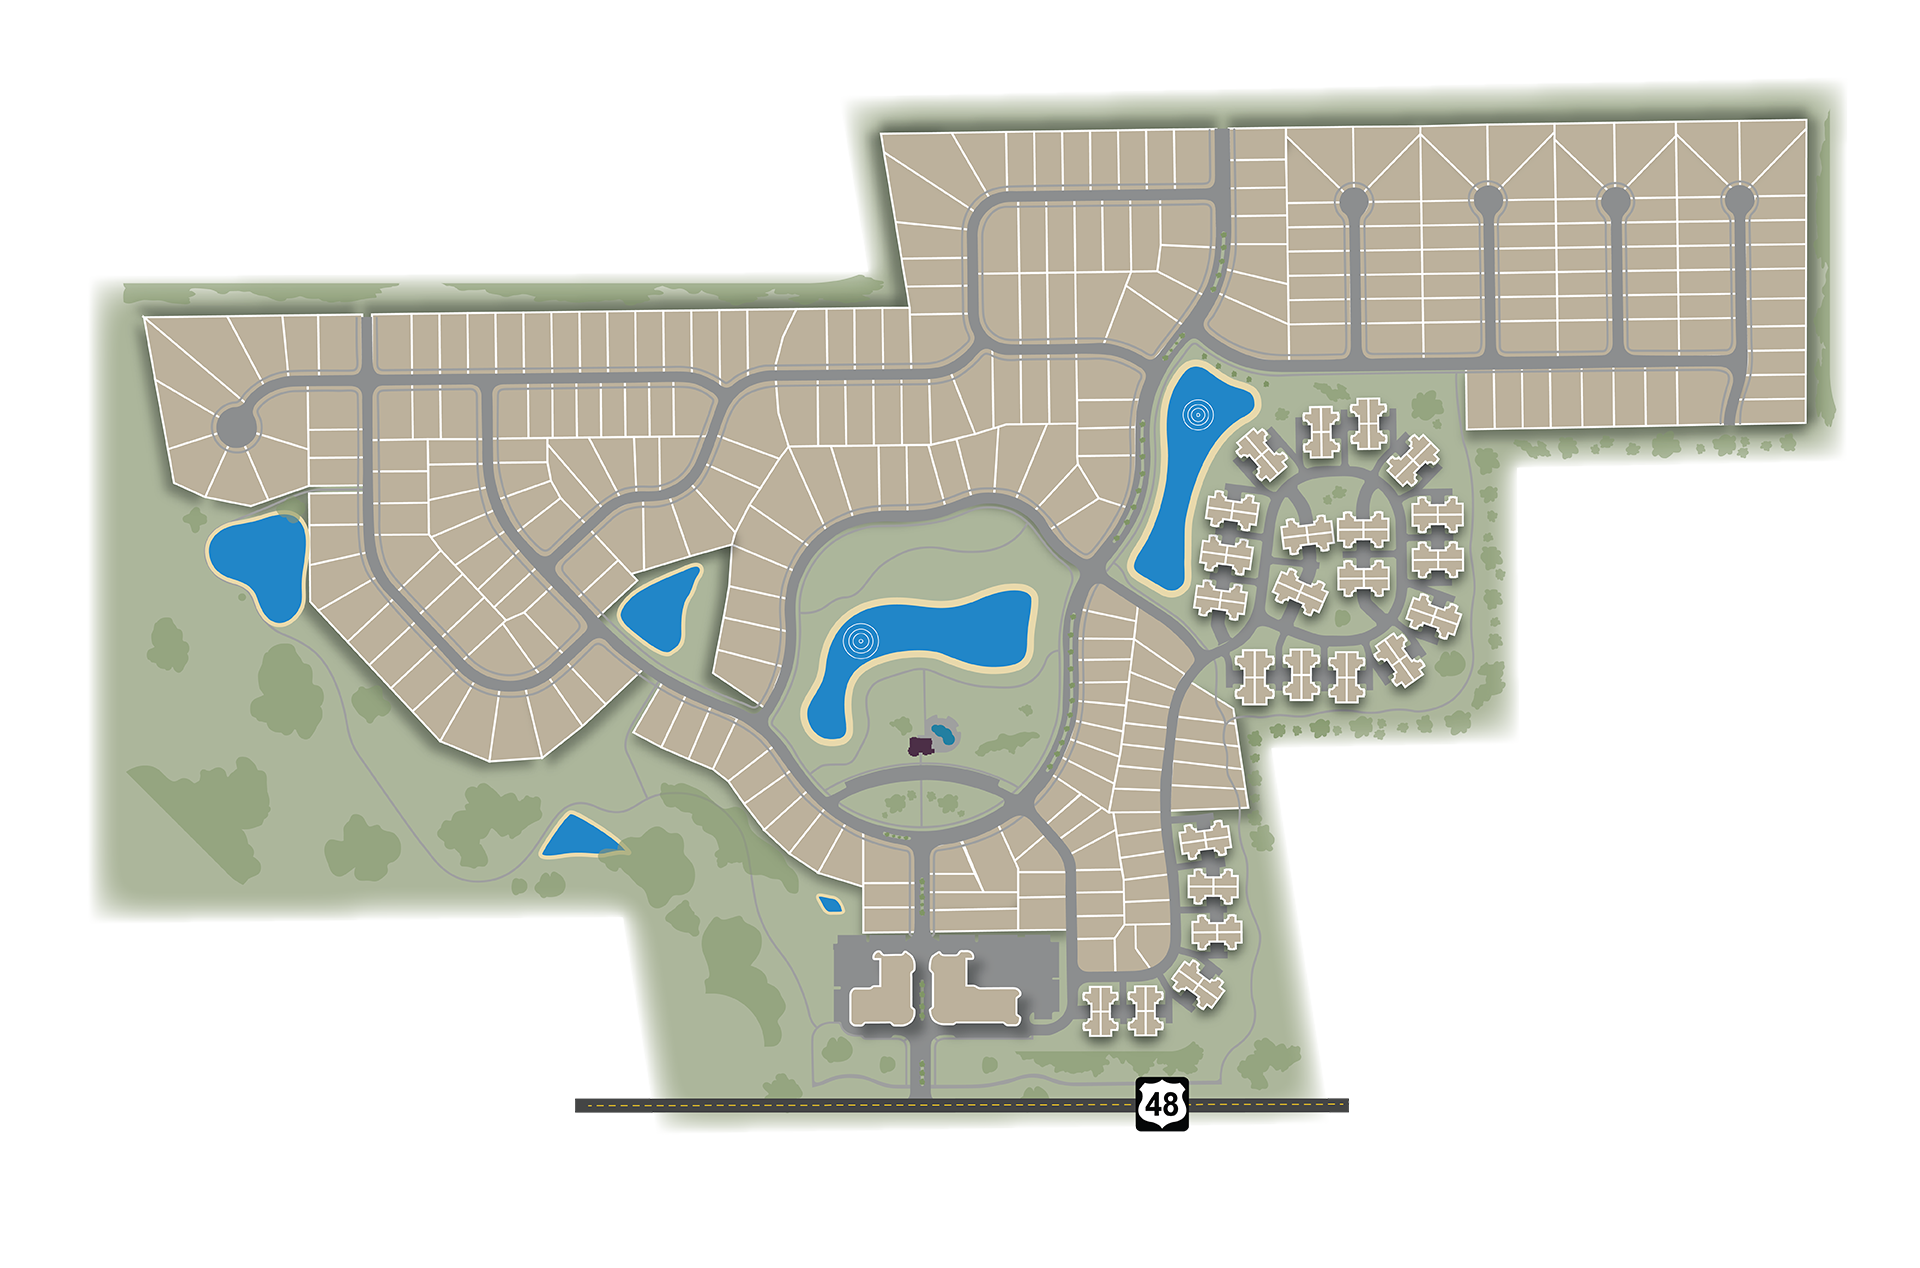 Full community map of Soraya Farms.